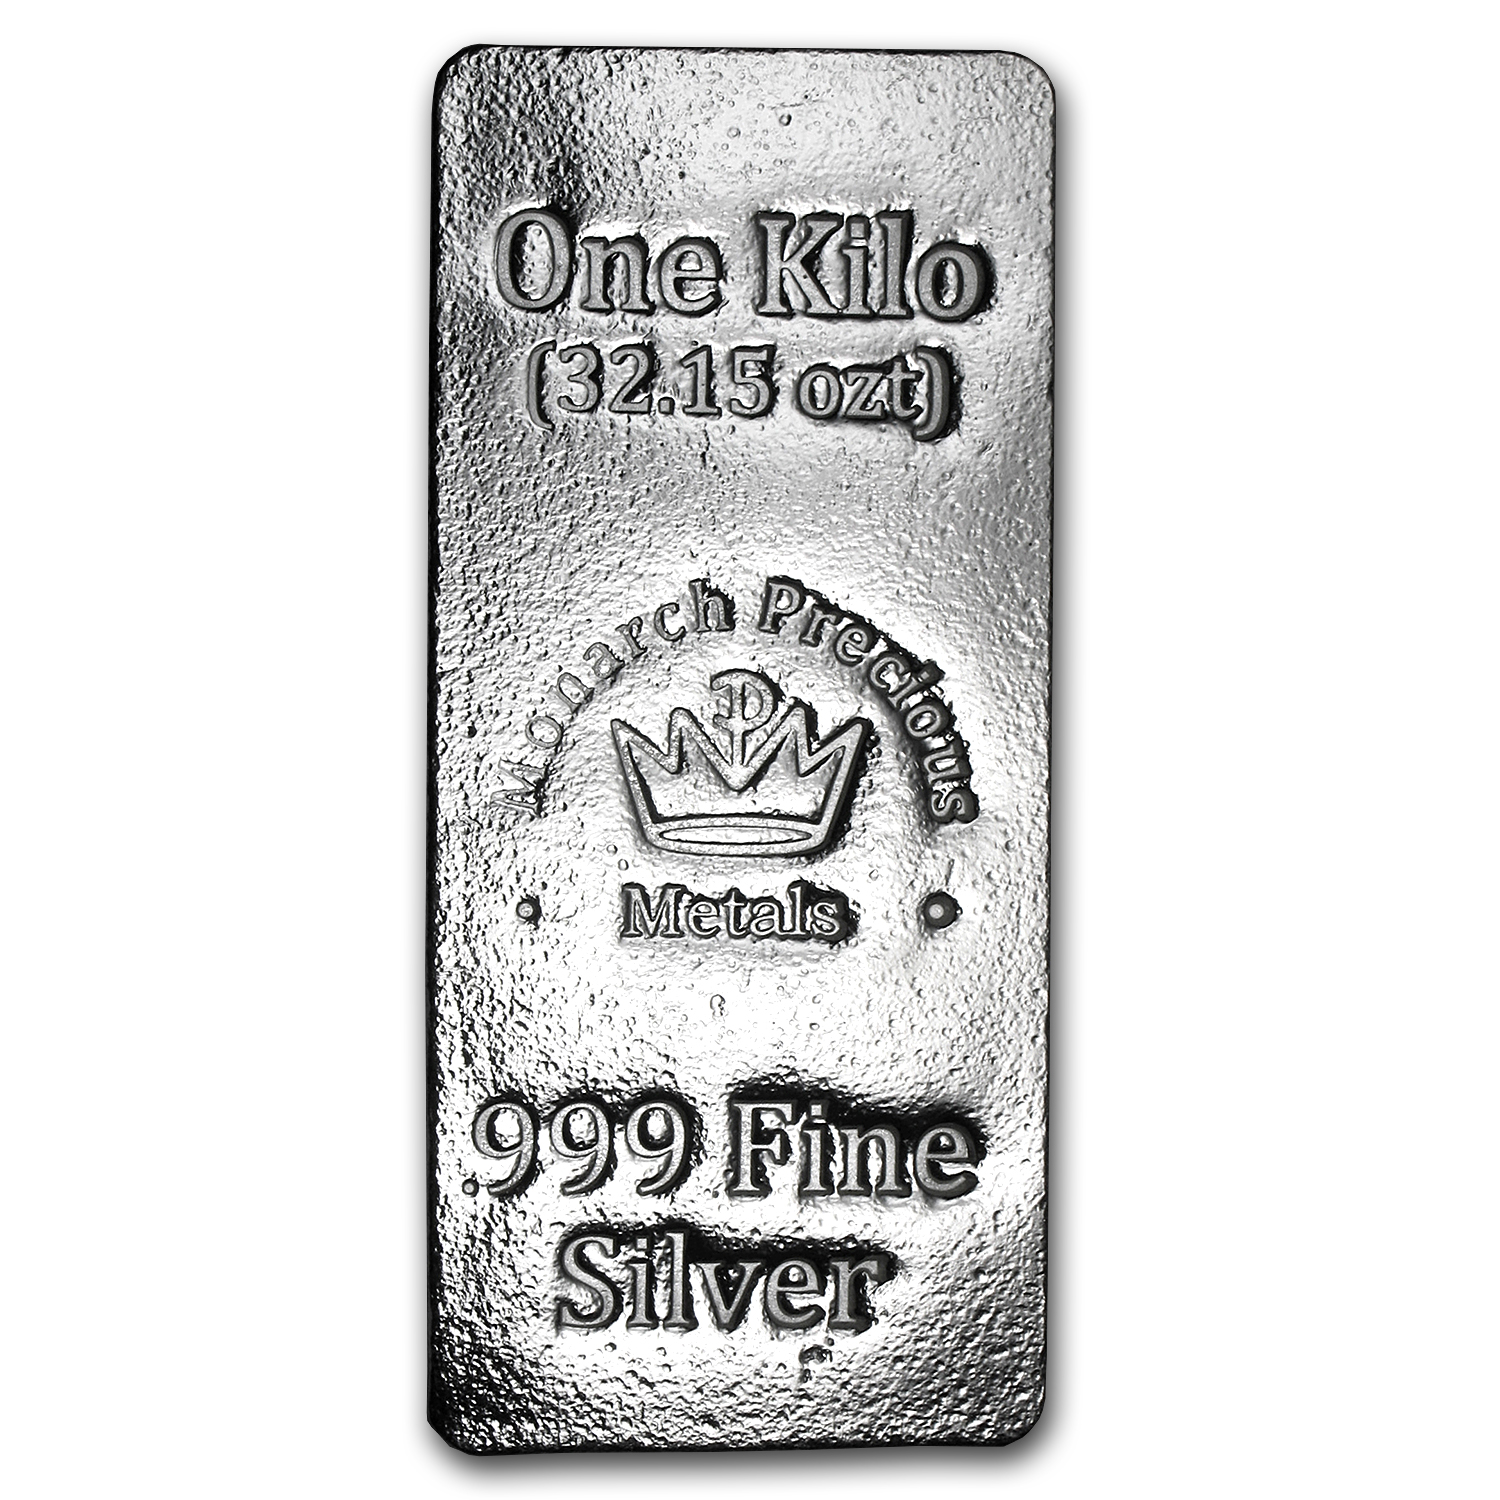 1 kilo Silver Bar - Monarch Precious Metals